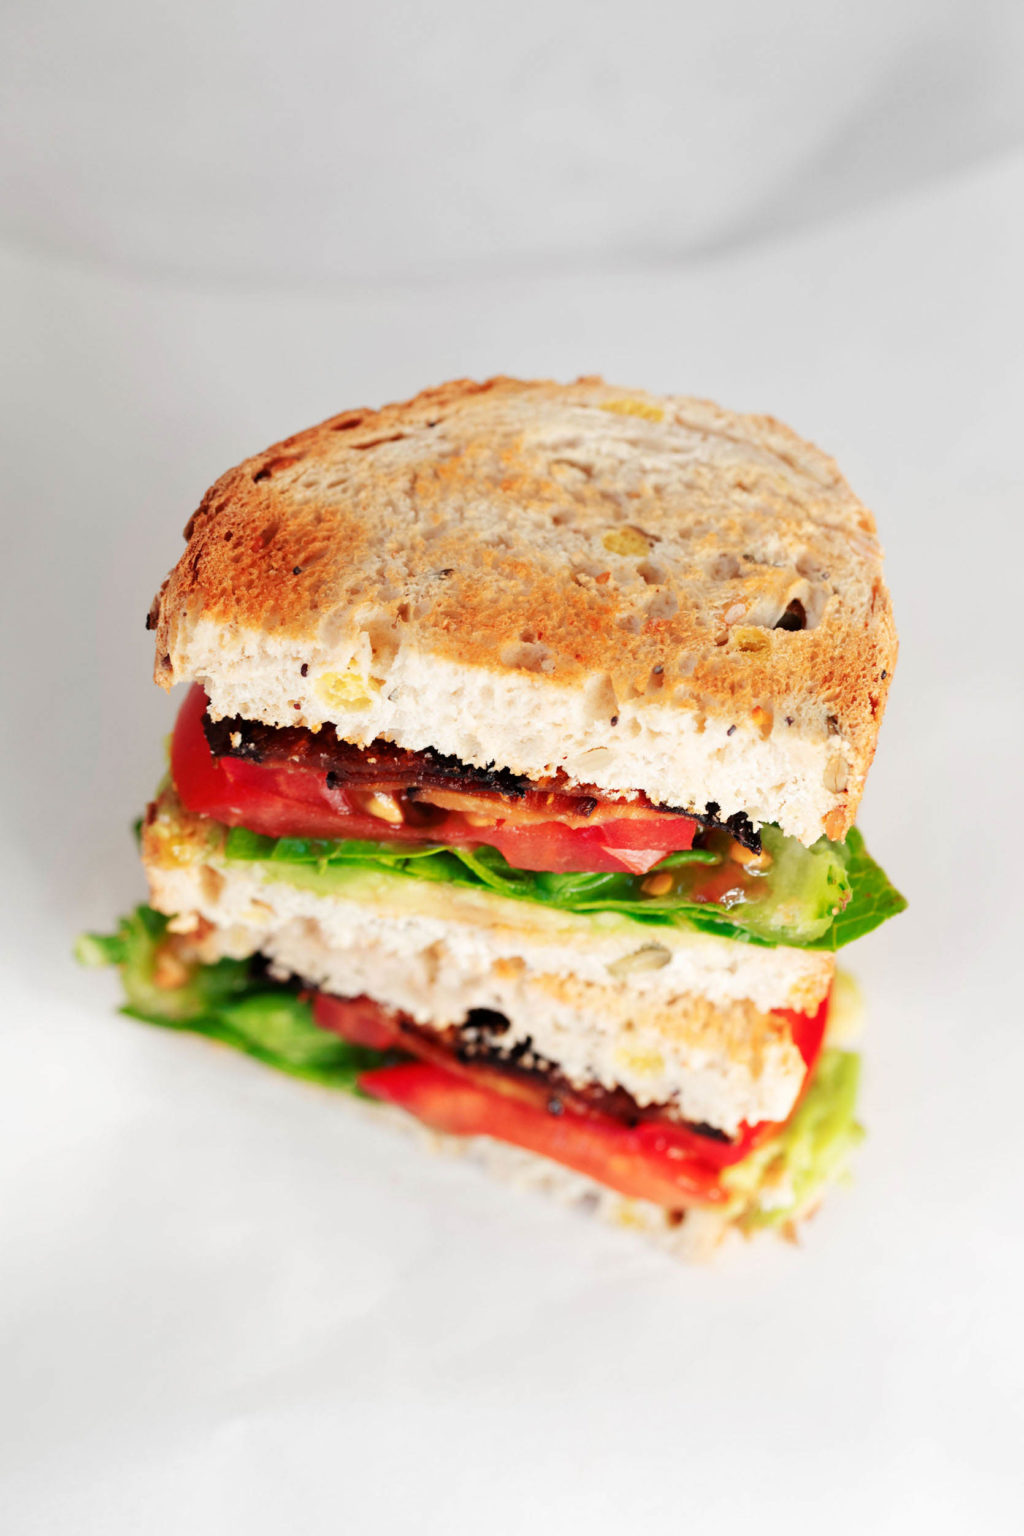 An angled, overhead image of a plant-based sandwich on white bread, with lettuce, tomato, and marinated eggplant slices.